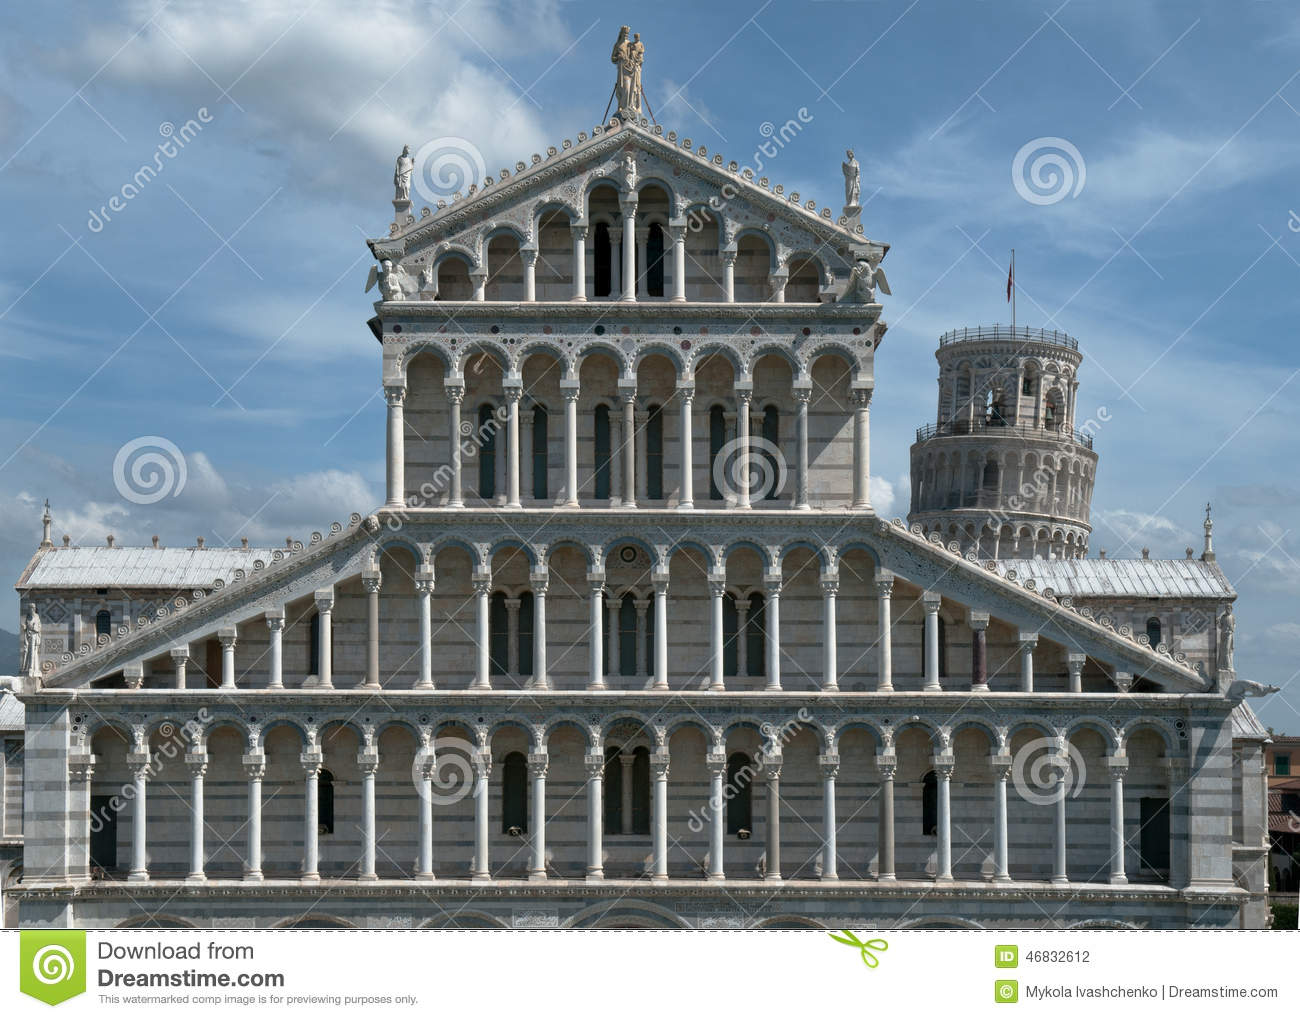 Pise architecture c l bre photo stock image 46832612 for Architecture celebre